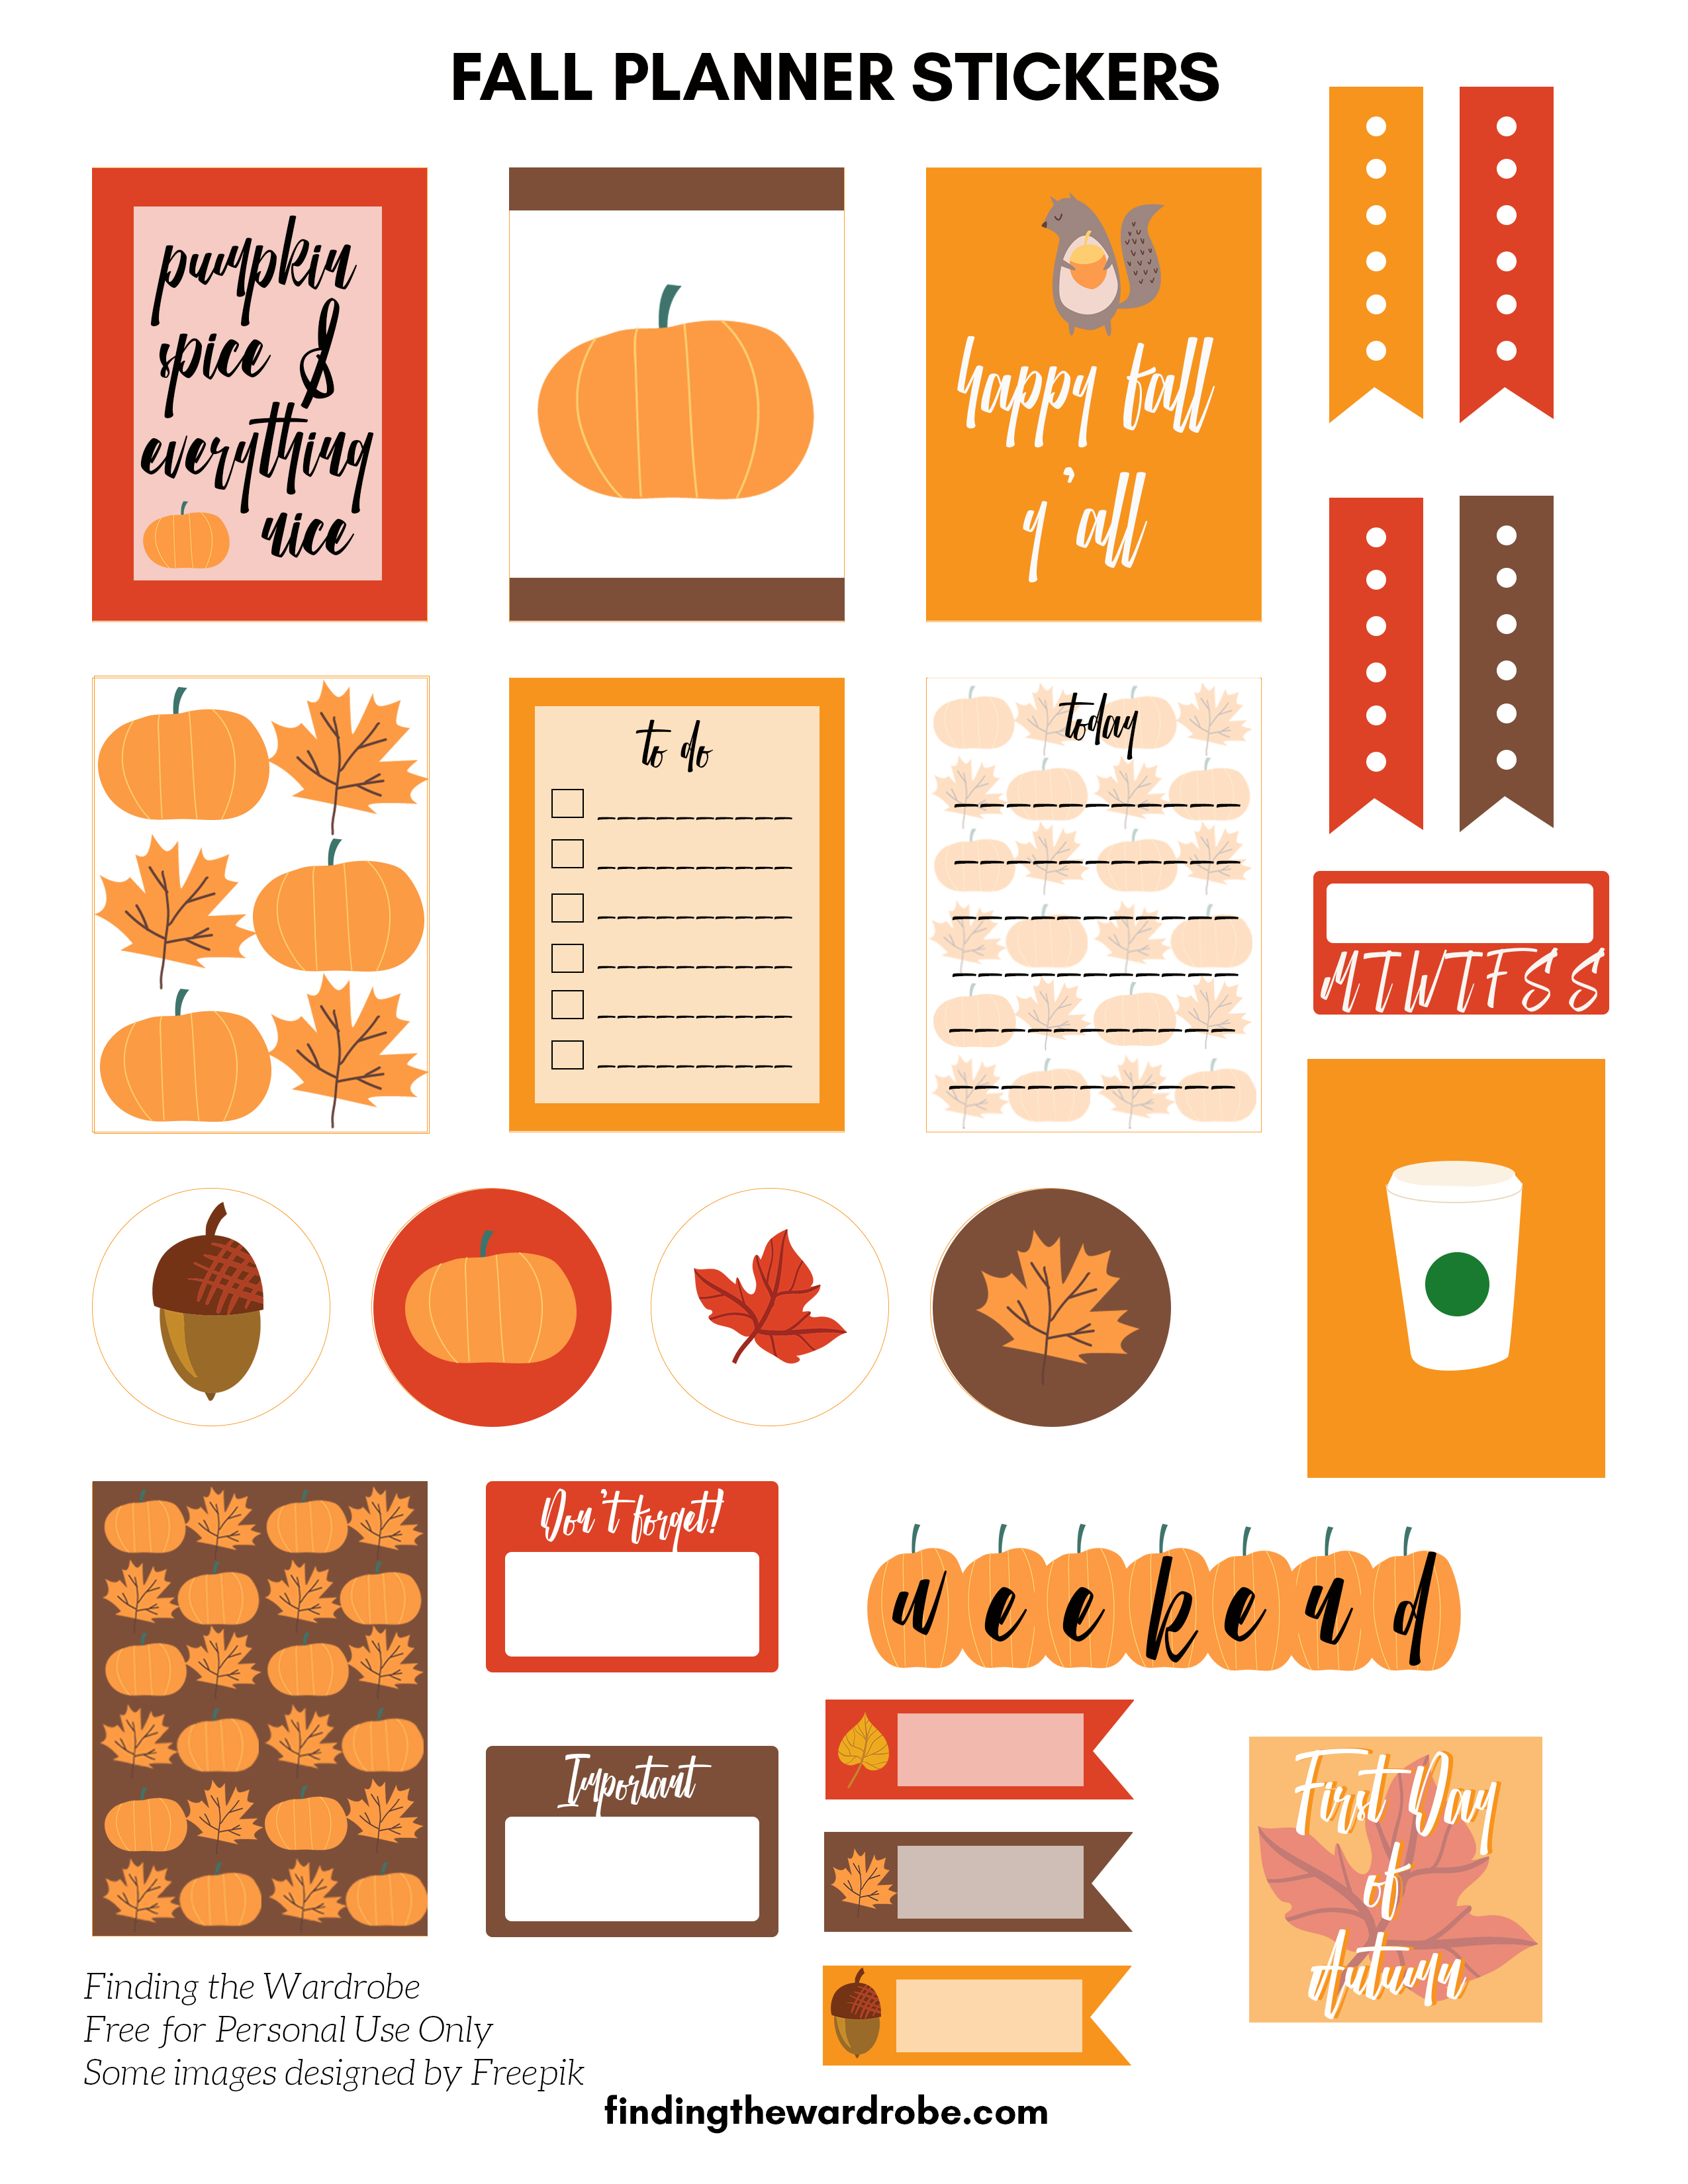 photograph about Free Printable Stickers known as Absolutely free Printable - Slide Planner Stickers - Getting the Wardrobe